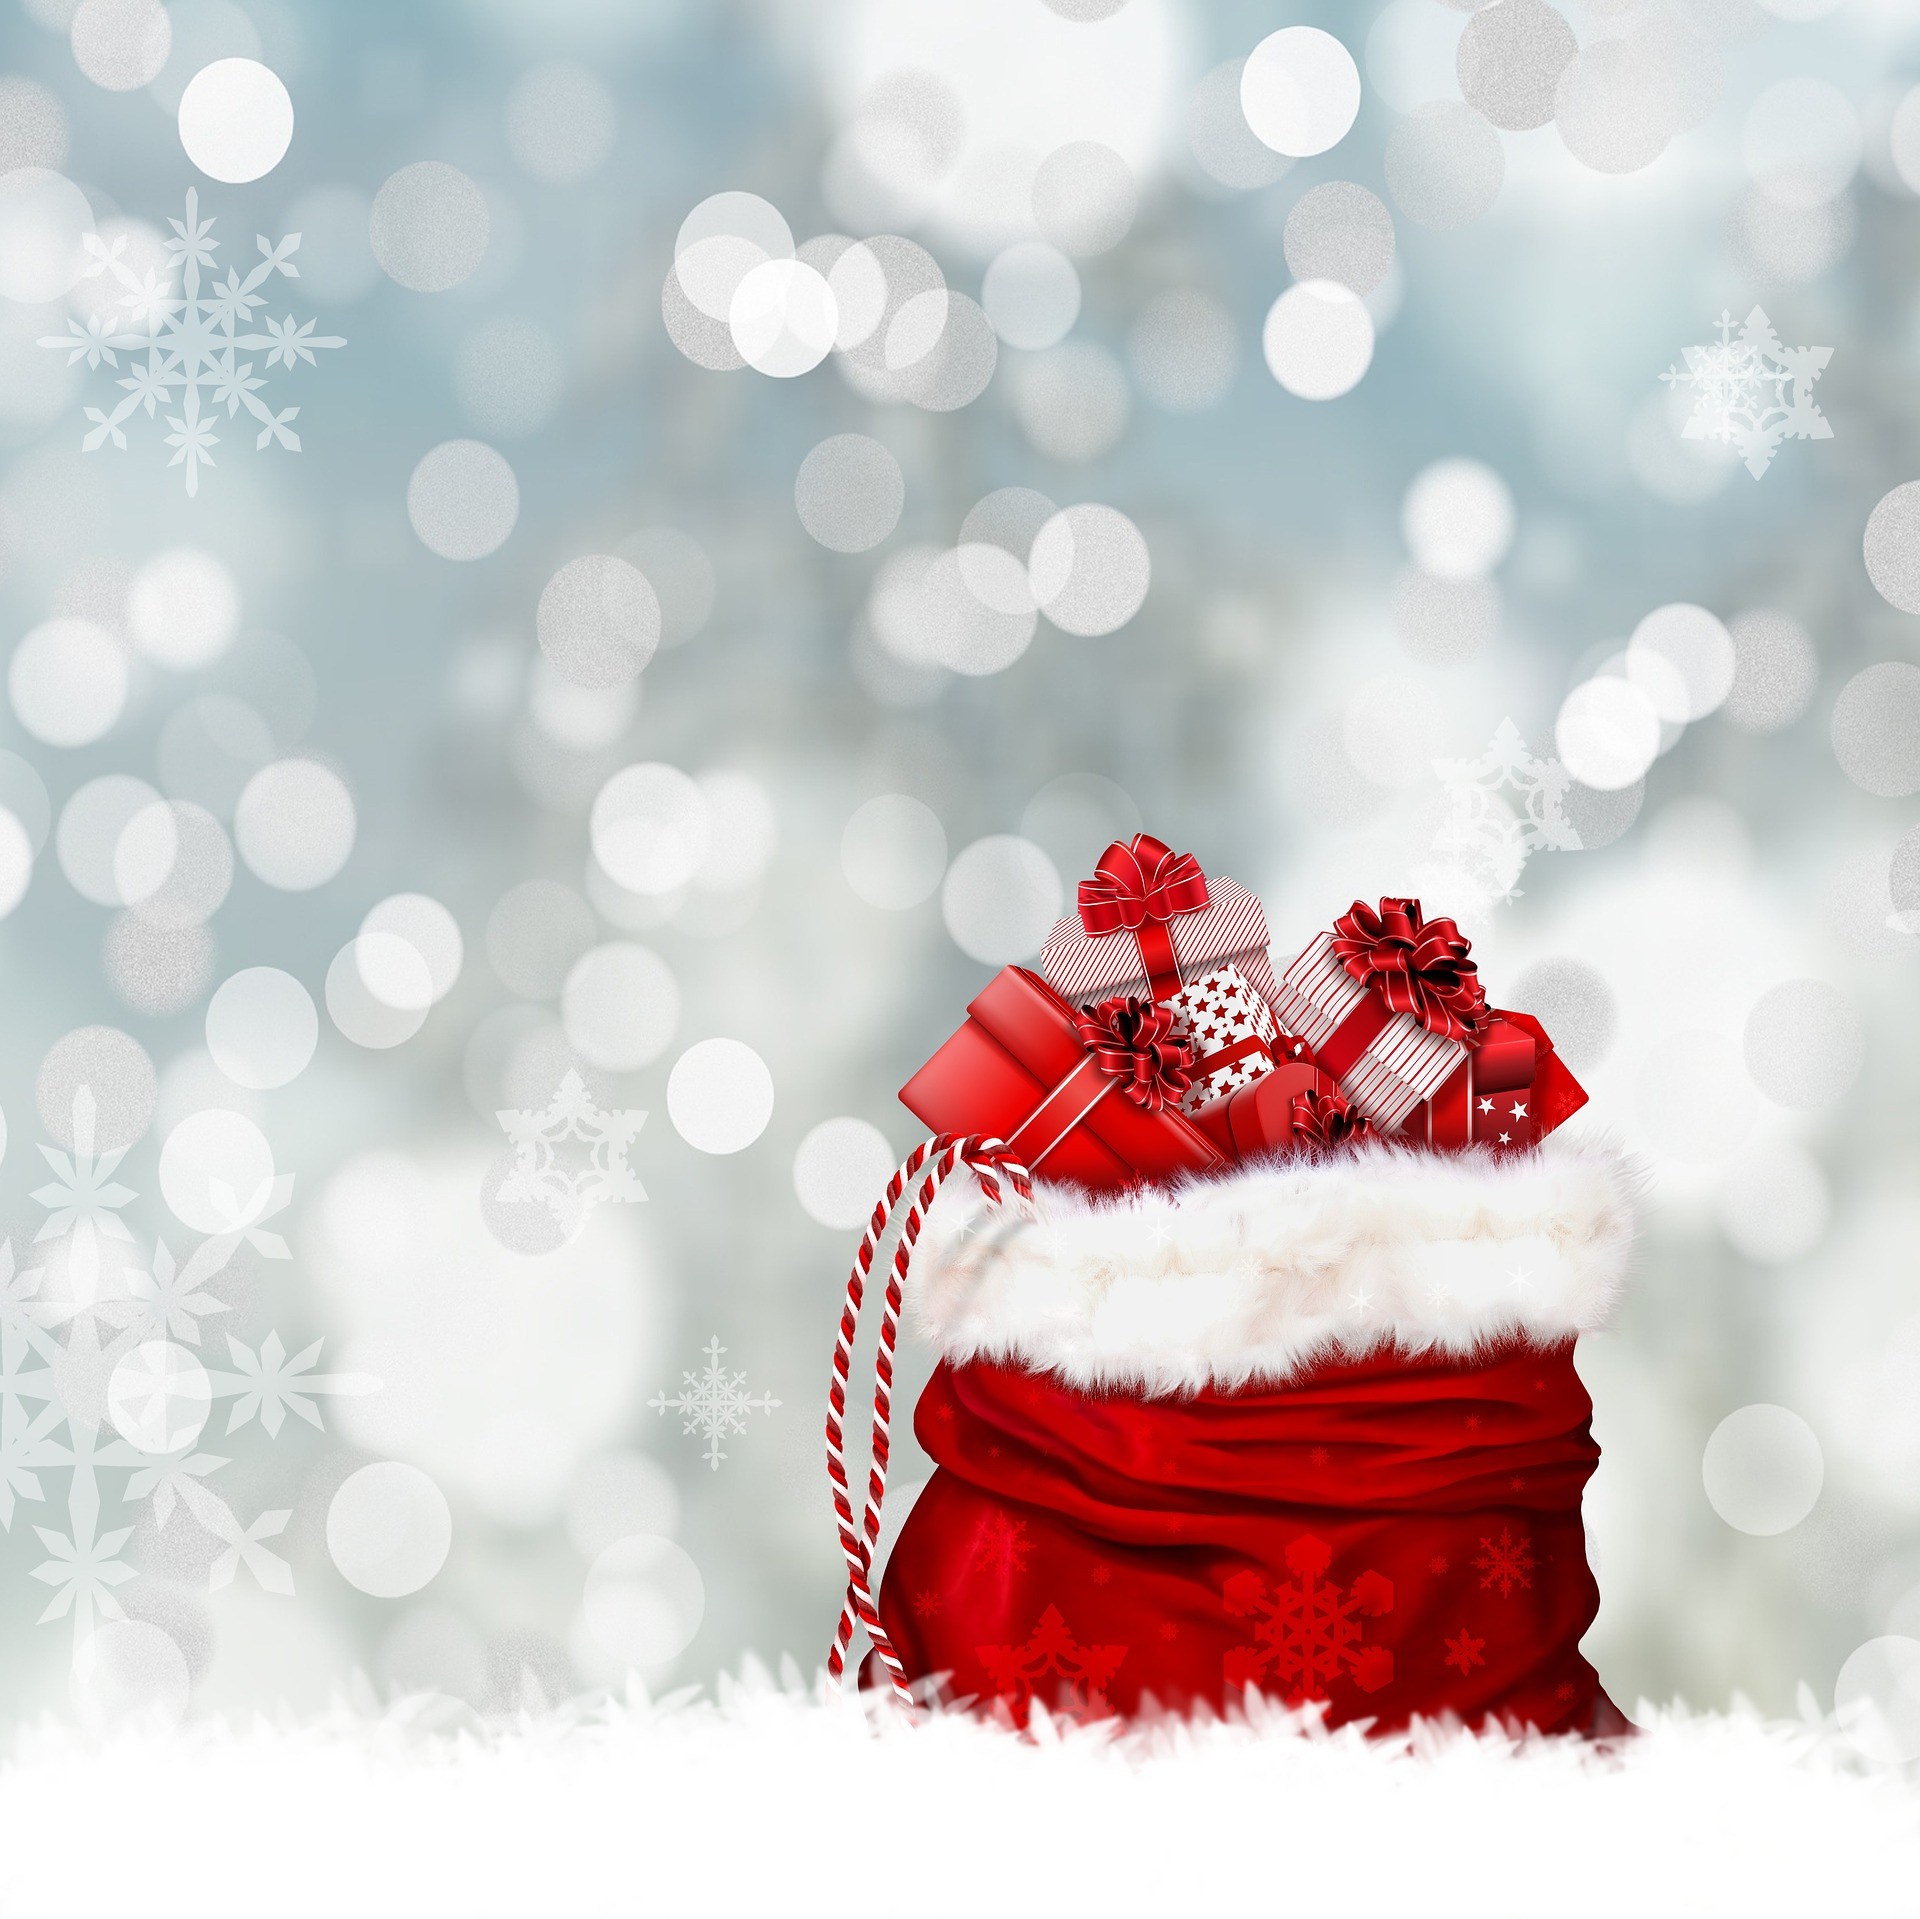 Best Wishes For This Christmas│Share Cute Christmas ...